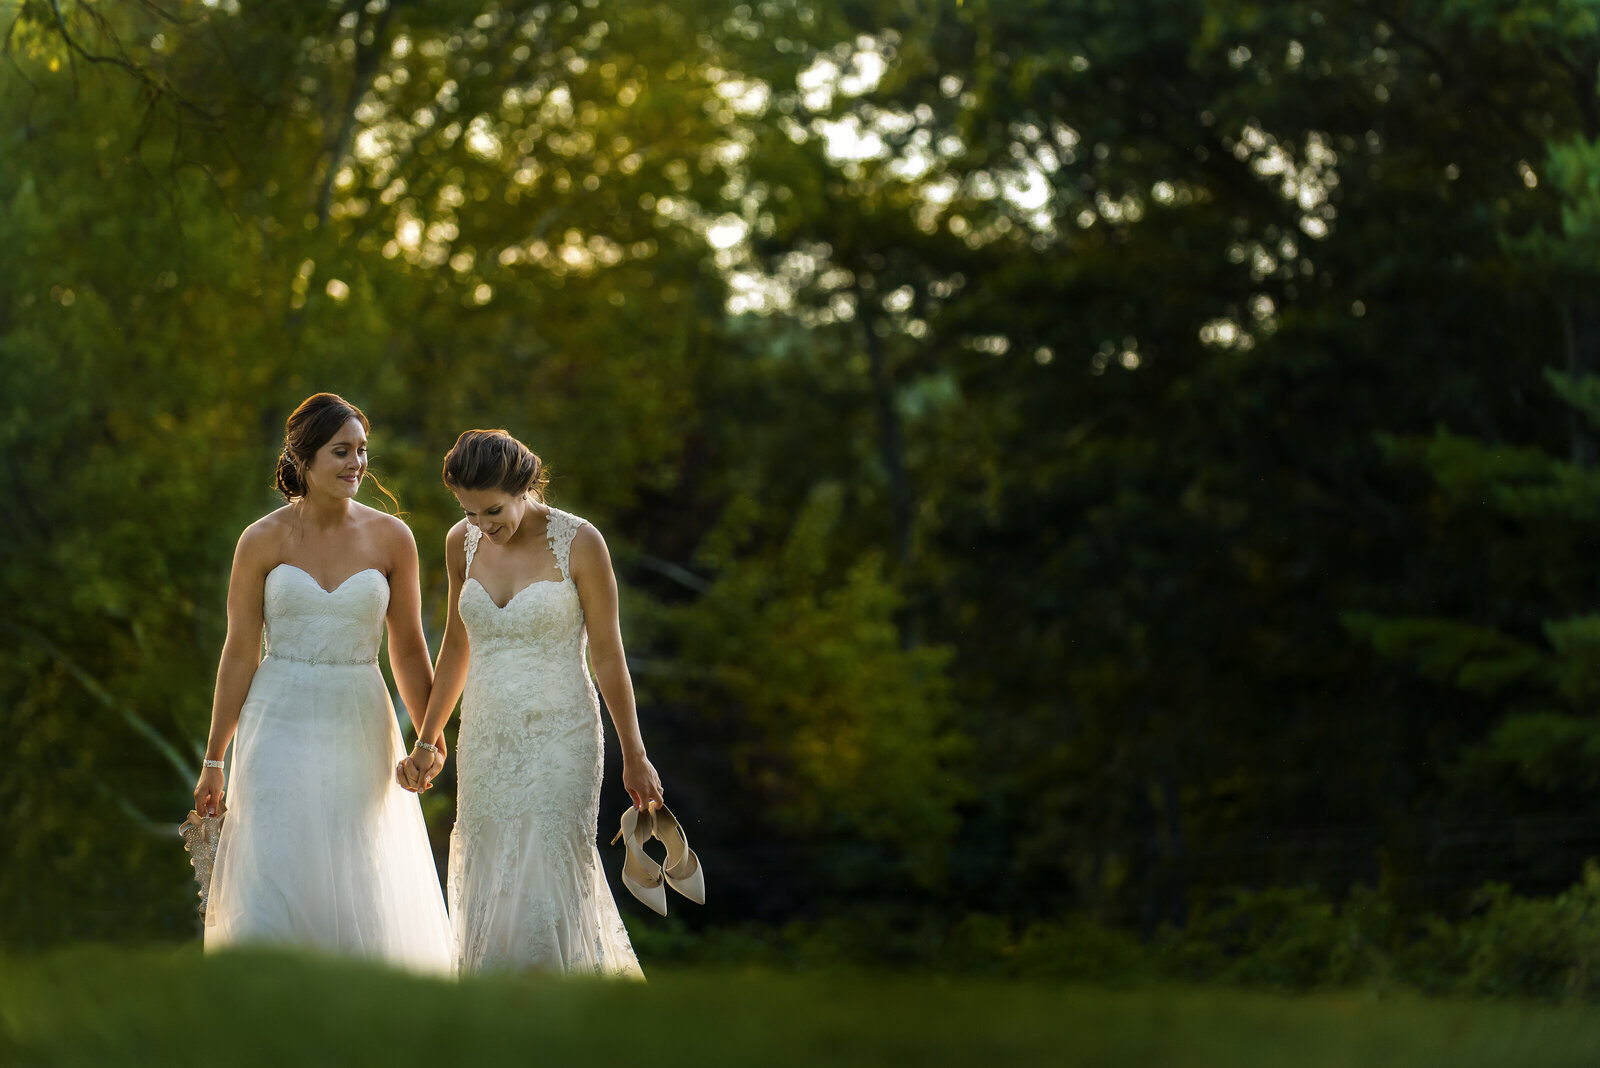 Brides walking together hand in hand in a lush green field at waterloo village in nj